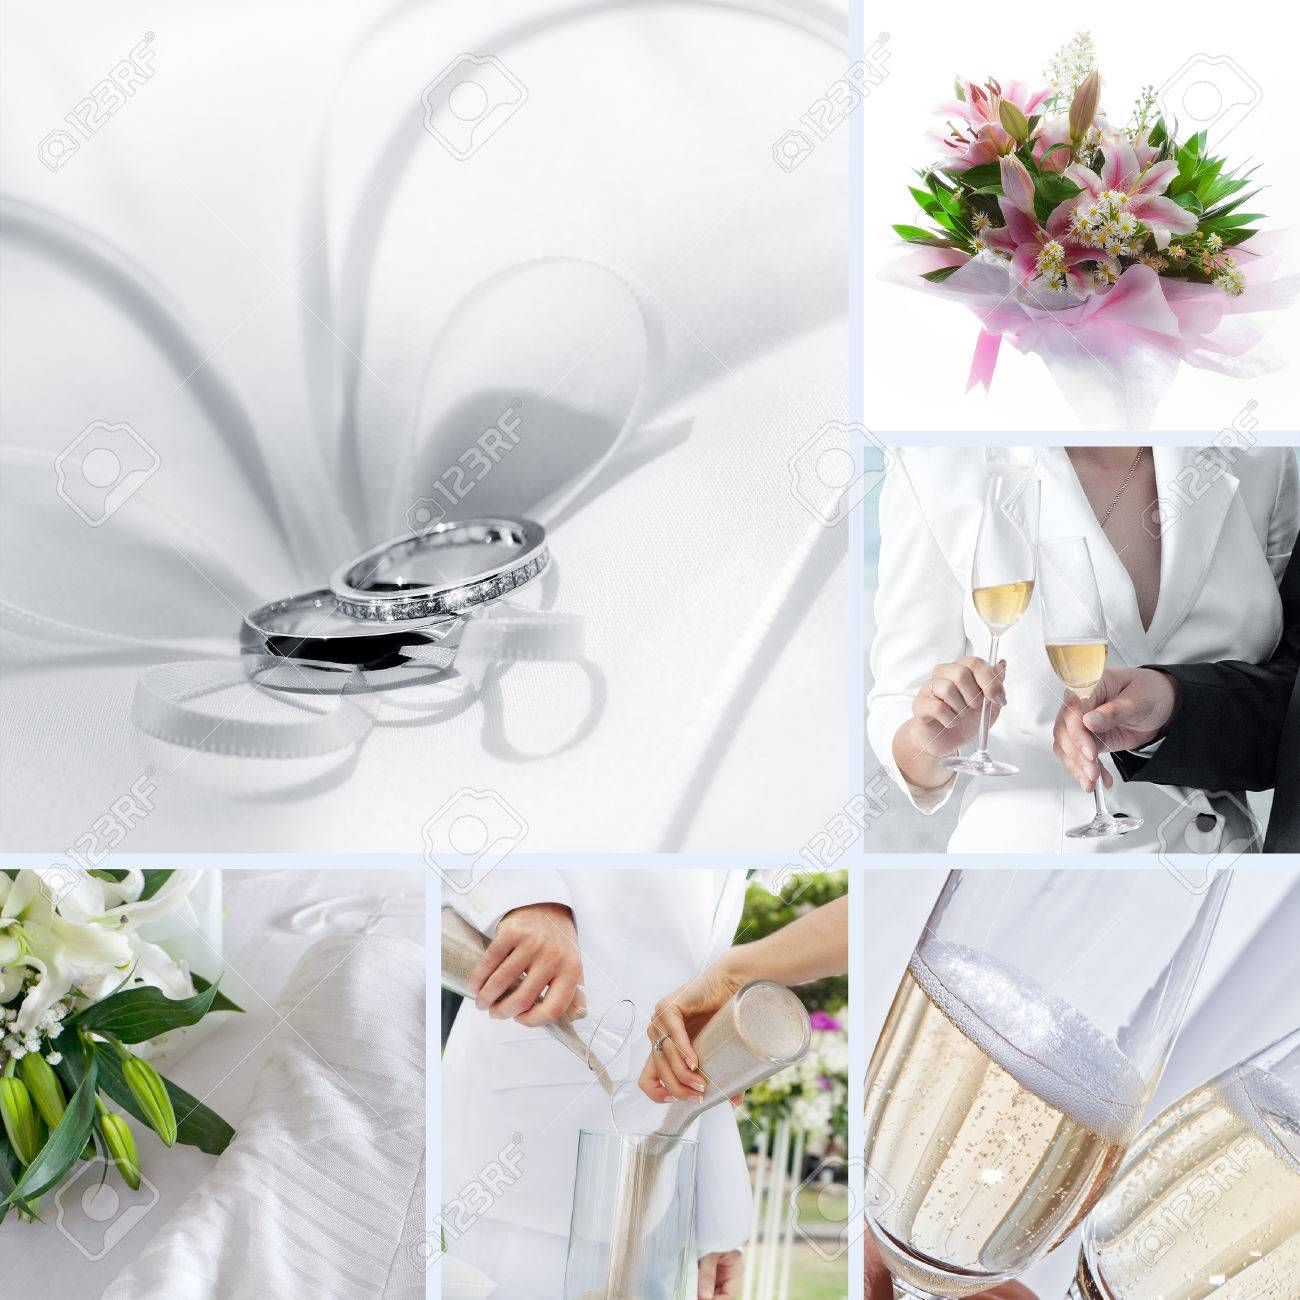 Wedding Theme Collage Composed Of Different Images Stock Photo ...